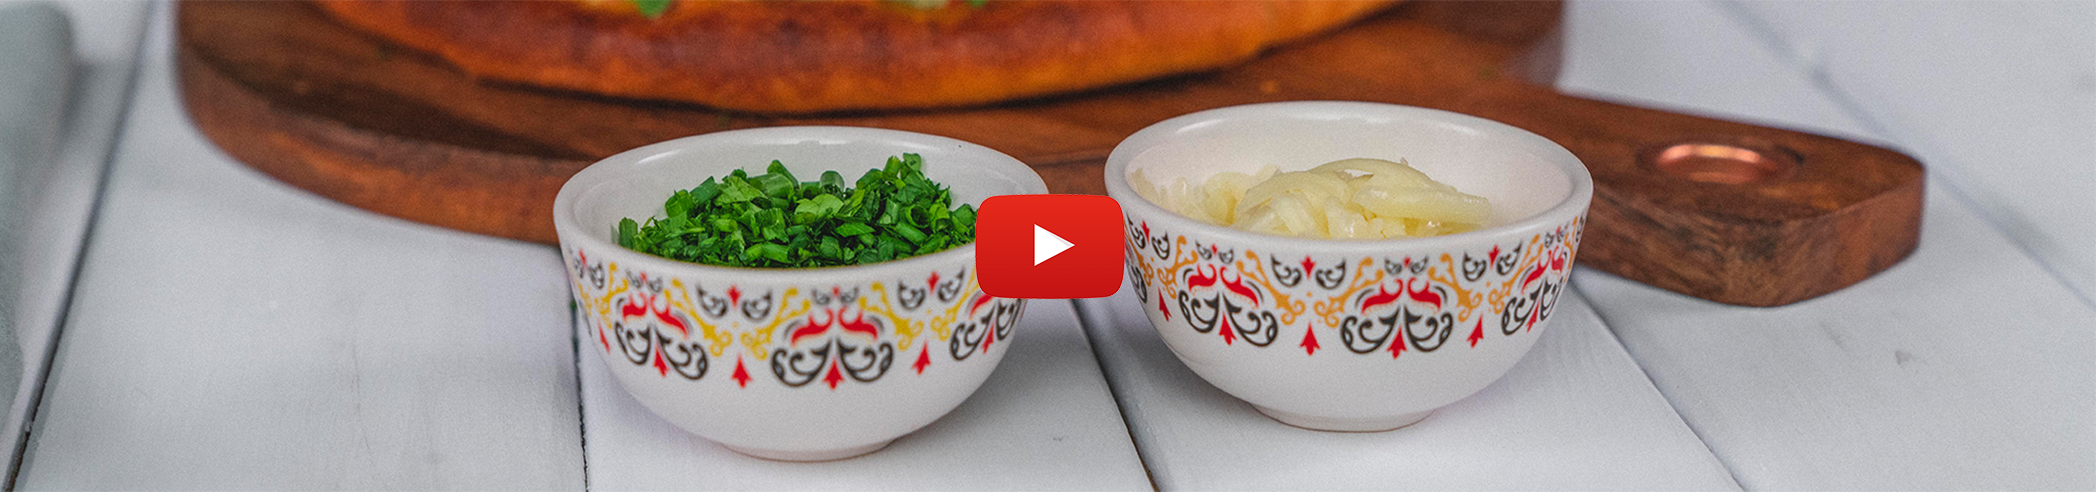 How to Prep a Tuscan Meal with Small Prep Bowls